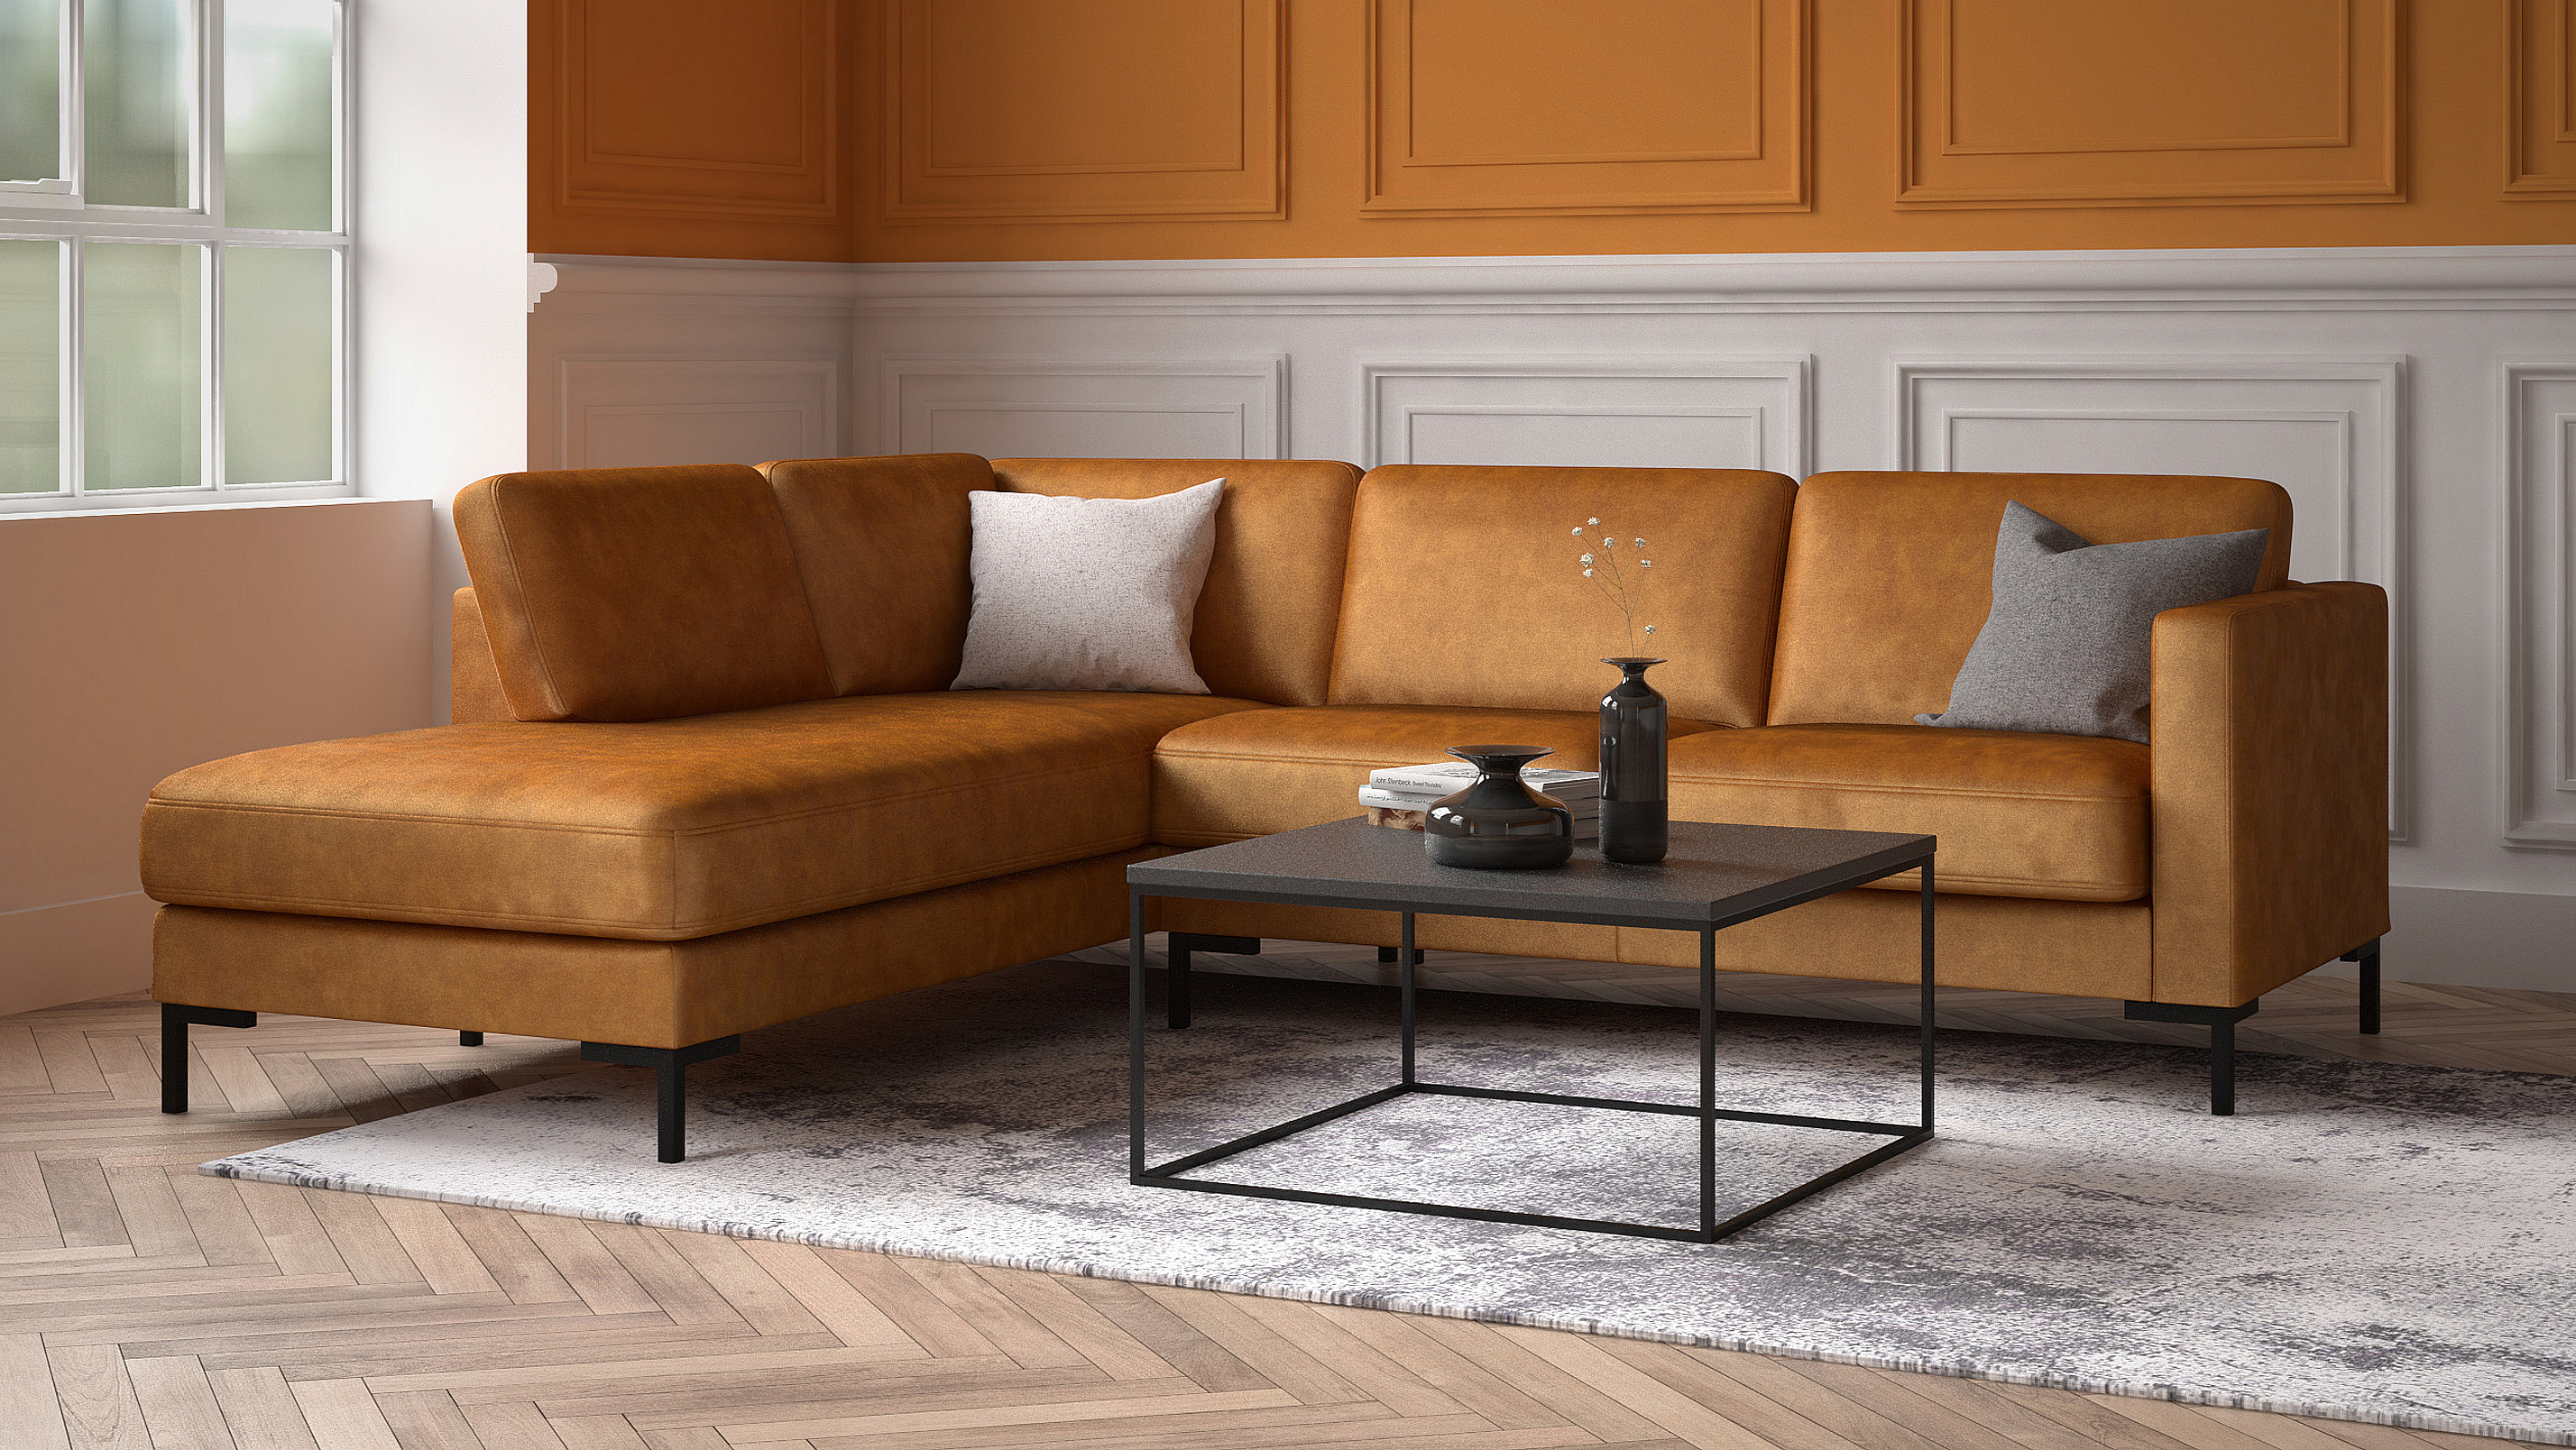 Living room example with a sofa in leather.